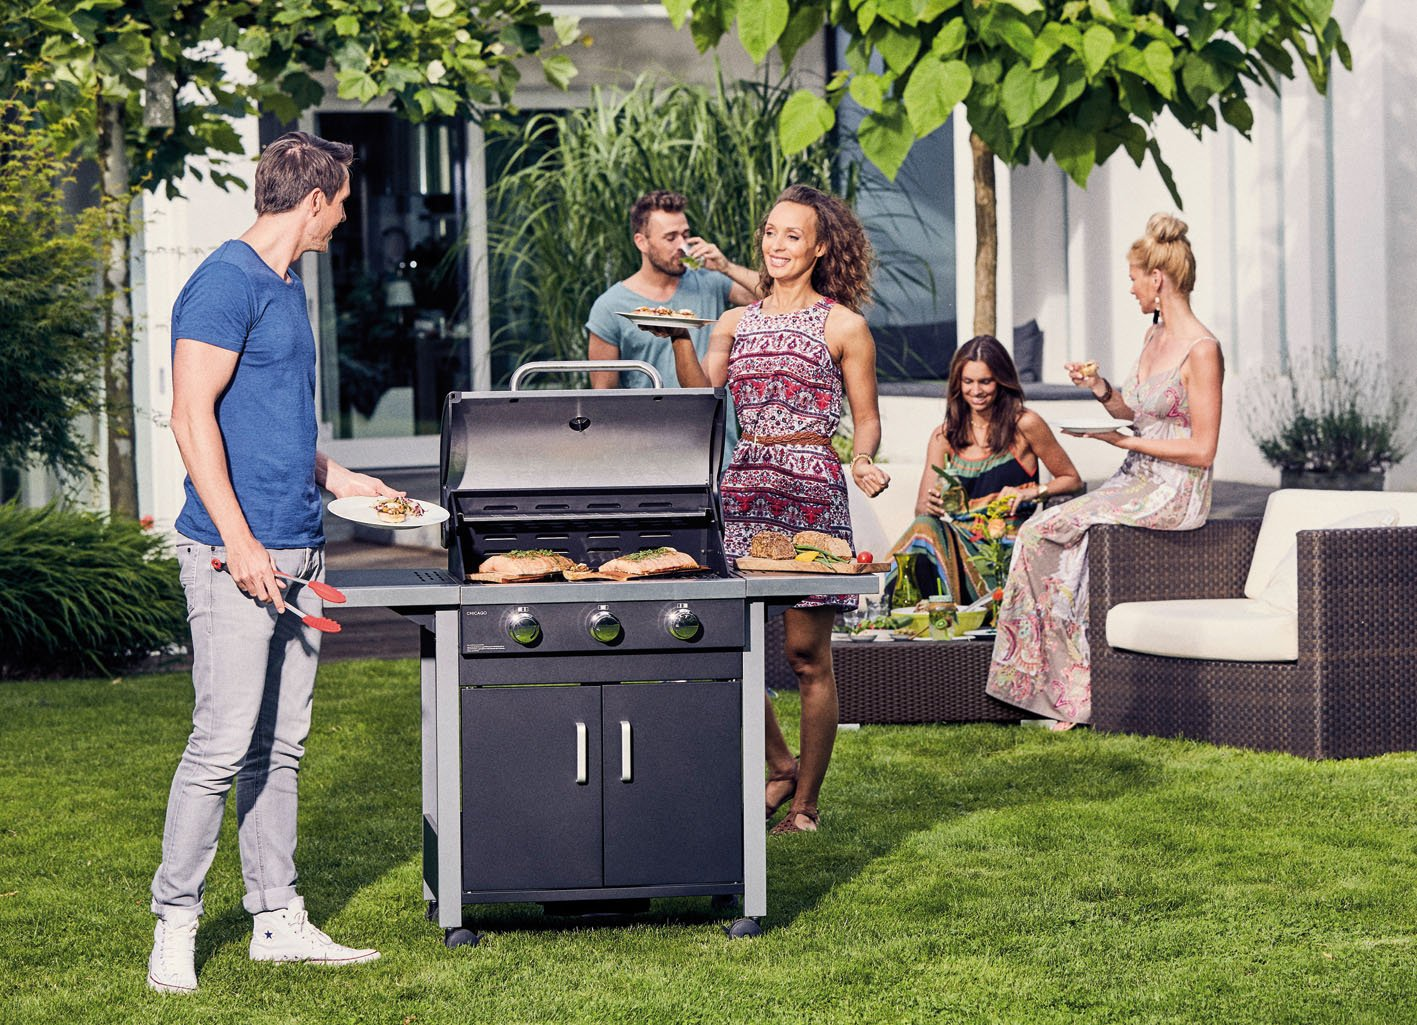 Enders Gasgrill Chicago Test : Enders gasgrill chicago 3 vorstellung & mehr ? freizeit smoker.de